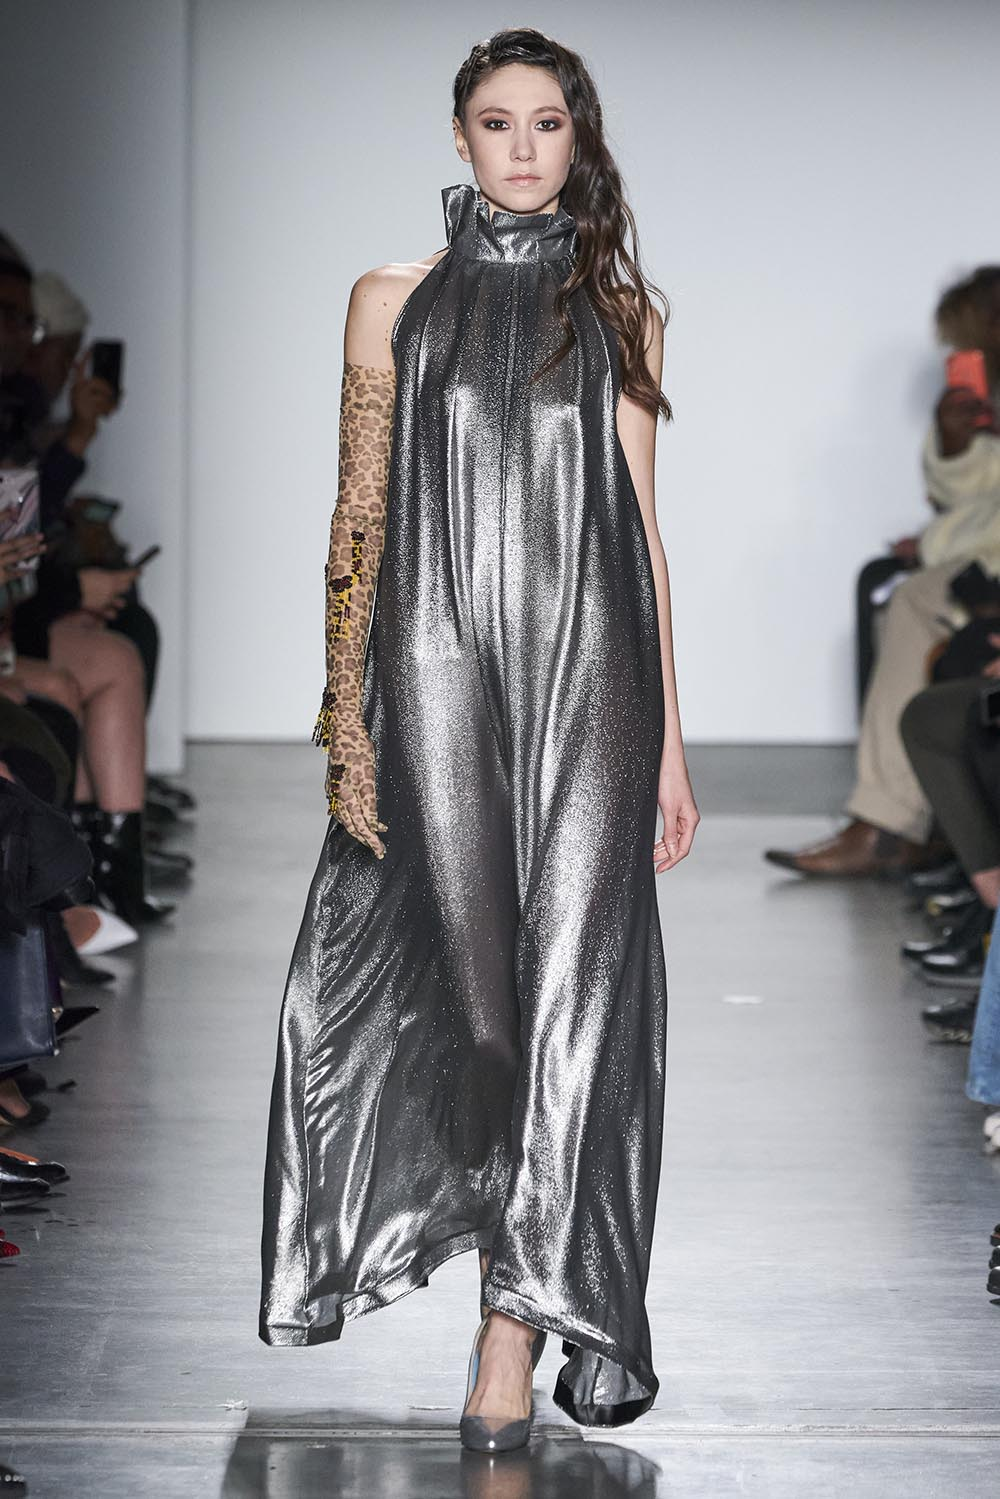 Caafd Selected Designers Received Rave Reviews During New York Fashion Week Fall Winter 2020 Showcase Fashion Week Online